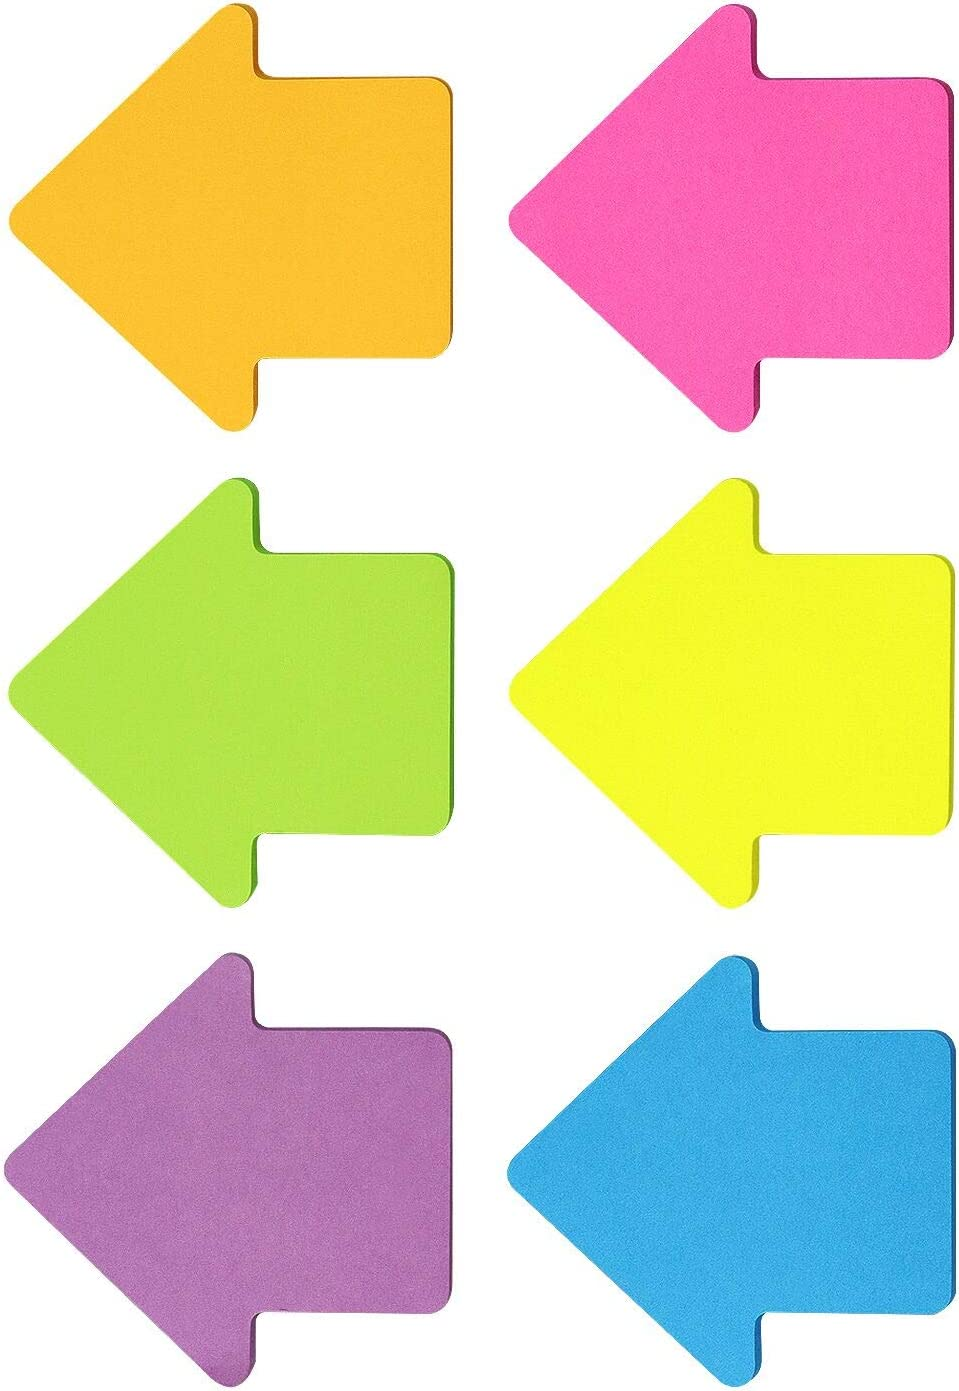 Arrow Shape Sticky Notes 6 Color Bright Colorful Sticky Pad 75 Sheets/Pad Self-Sticky Note Pads (6 Pads)